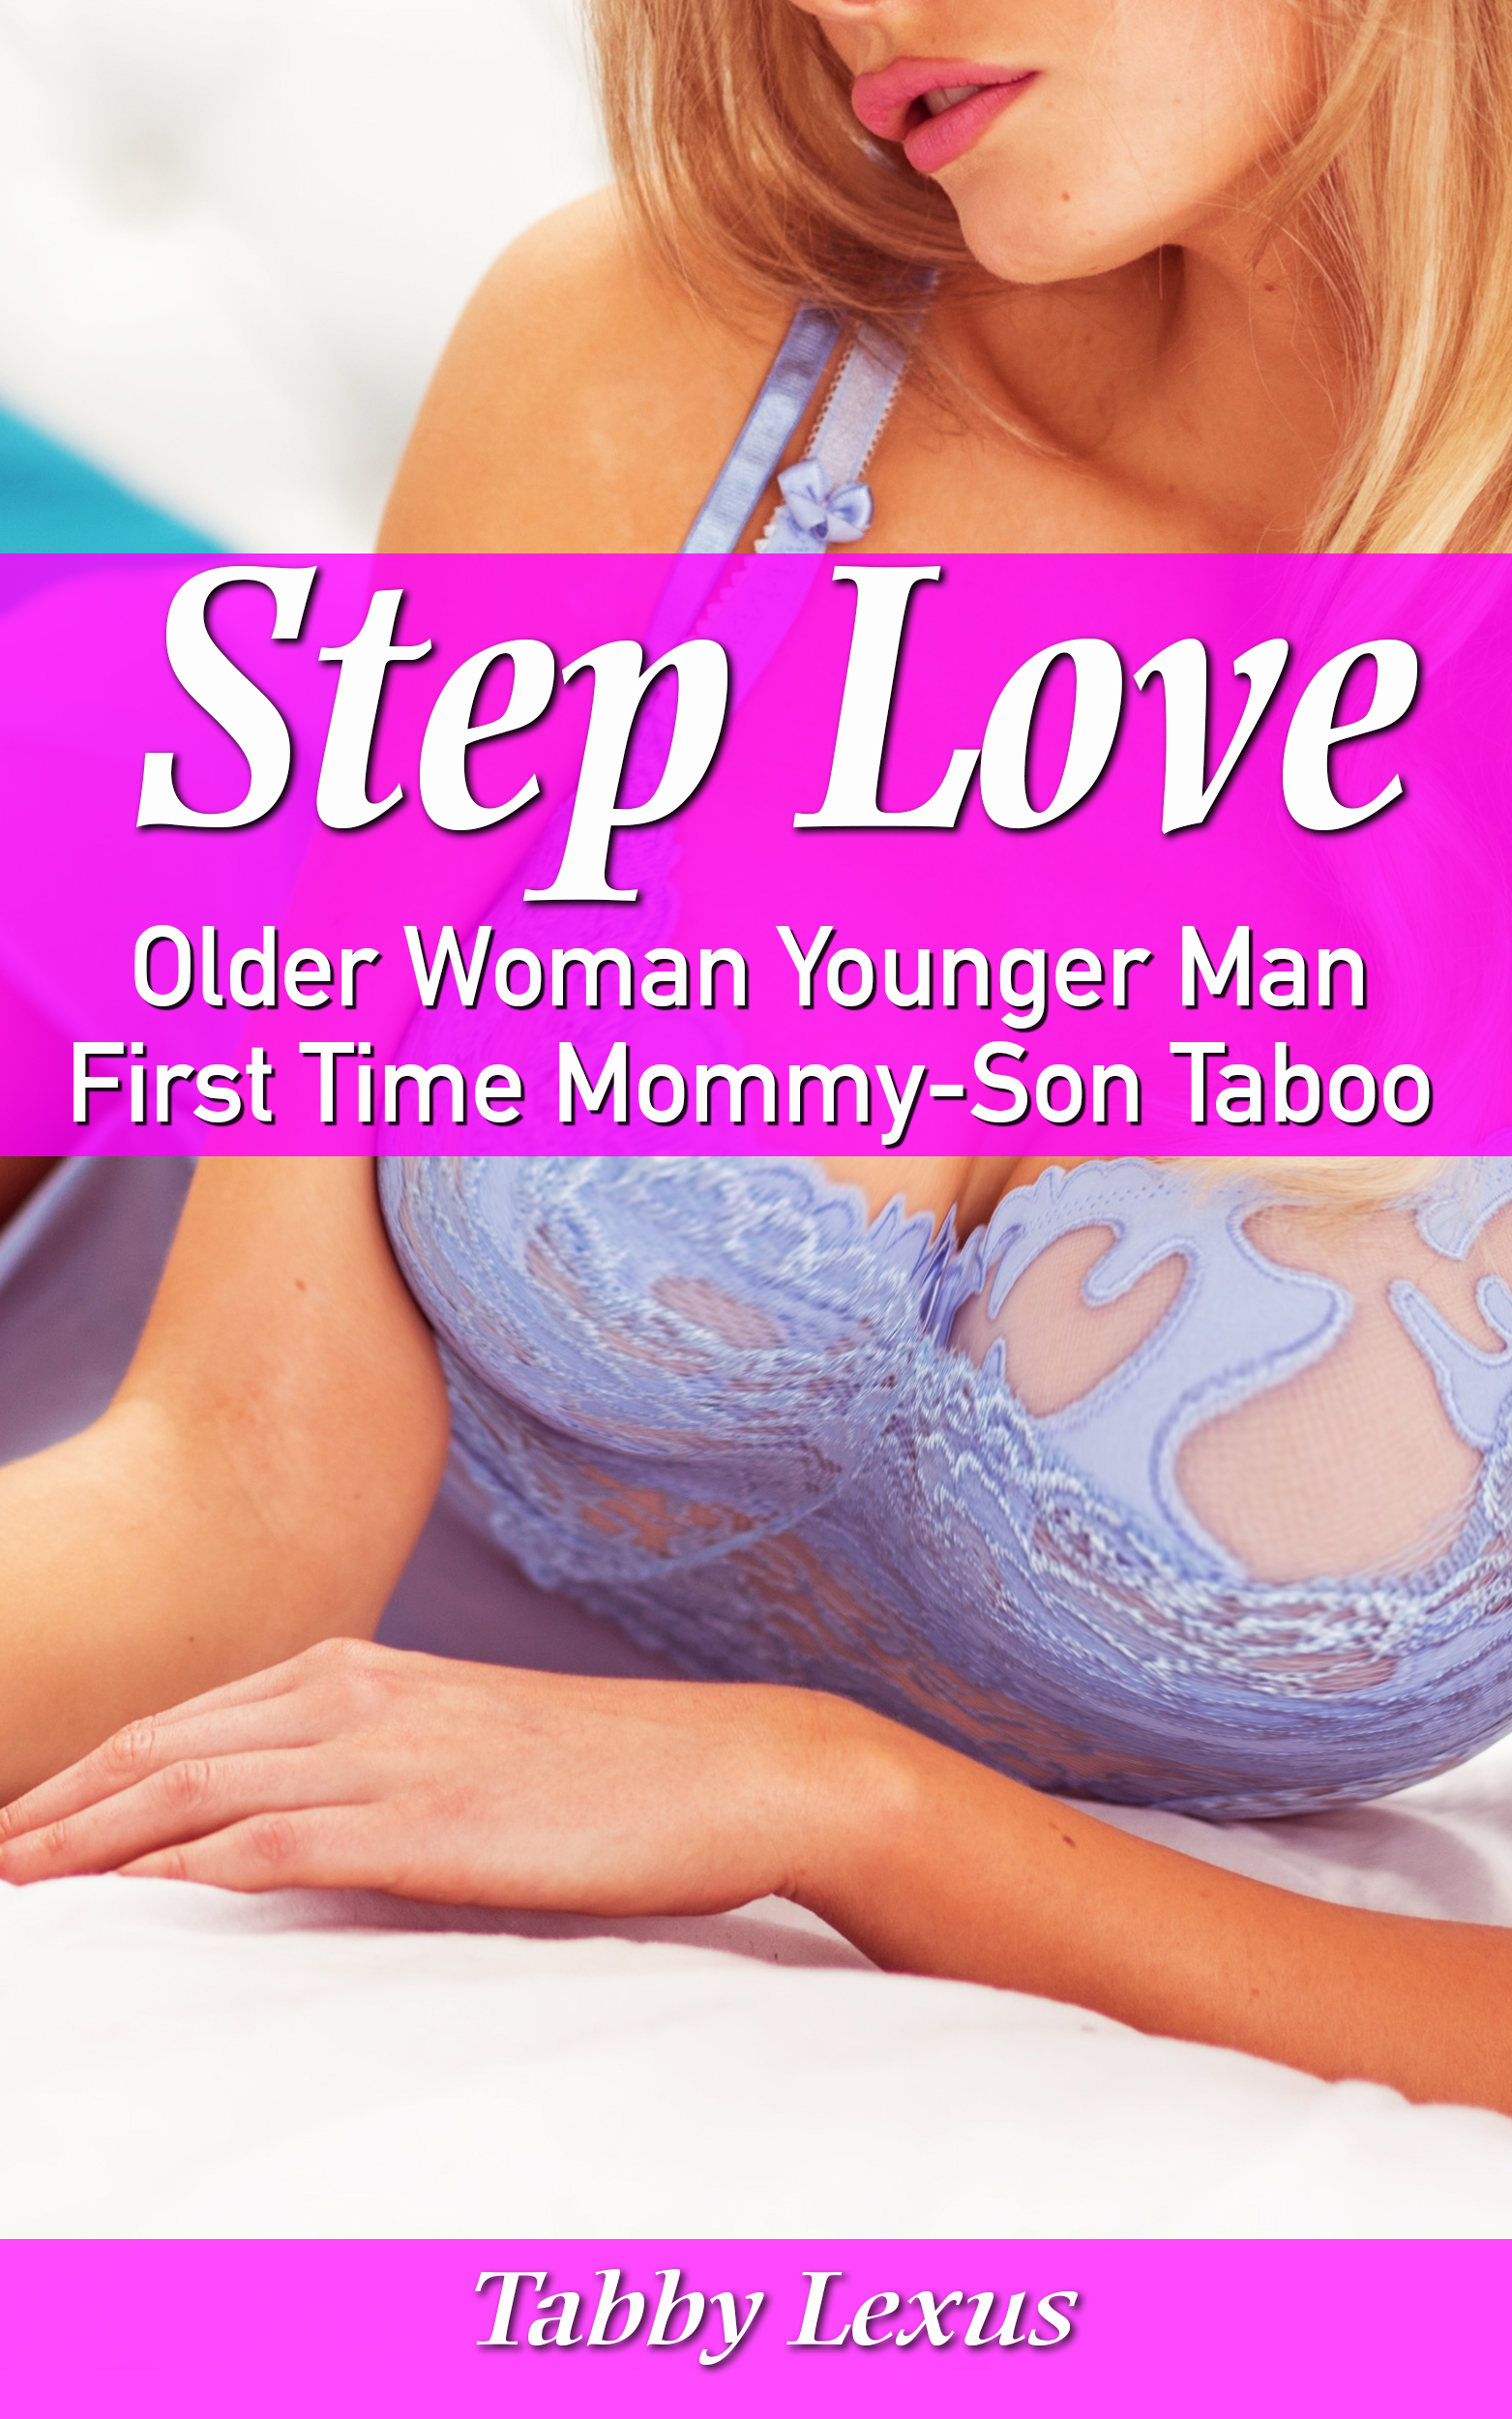 Step Love: Older Woman Younger Man First Time Mommy-Son Taboo Tabby Lexus